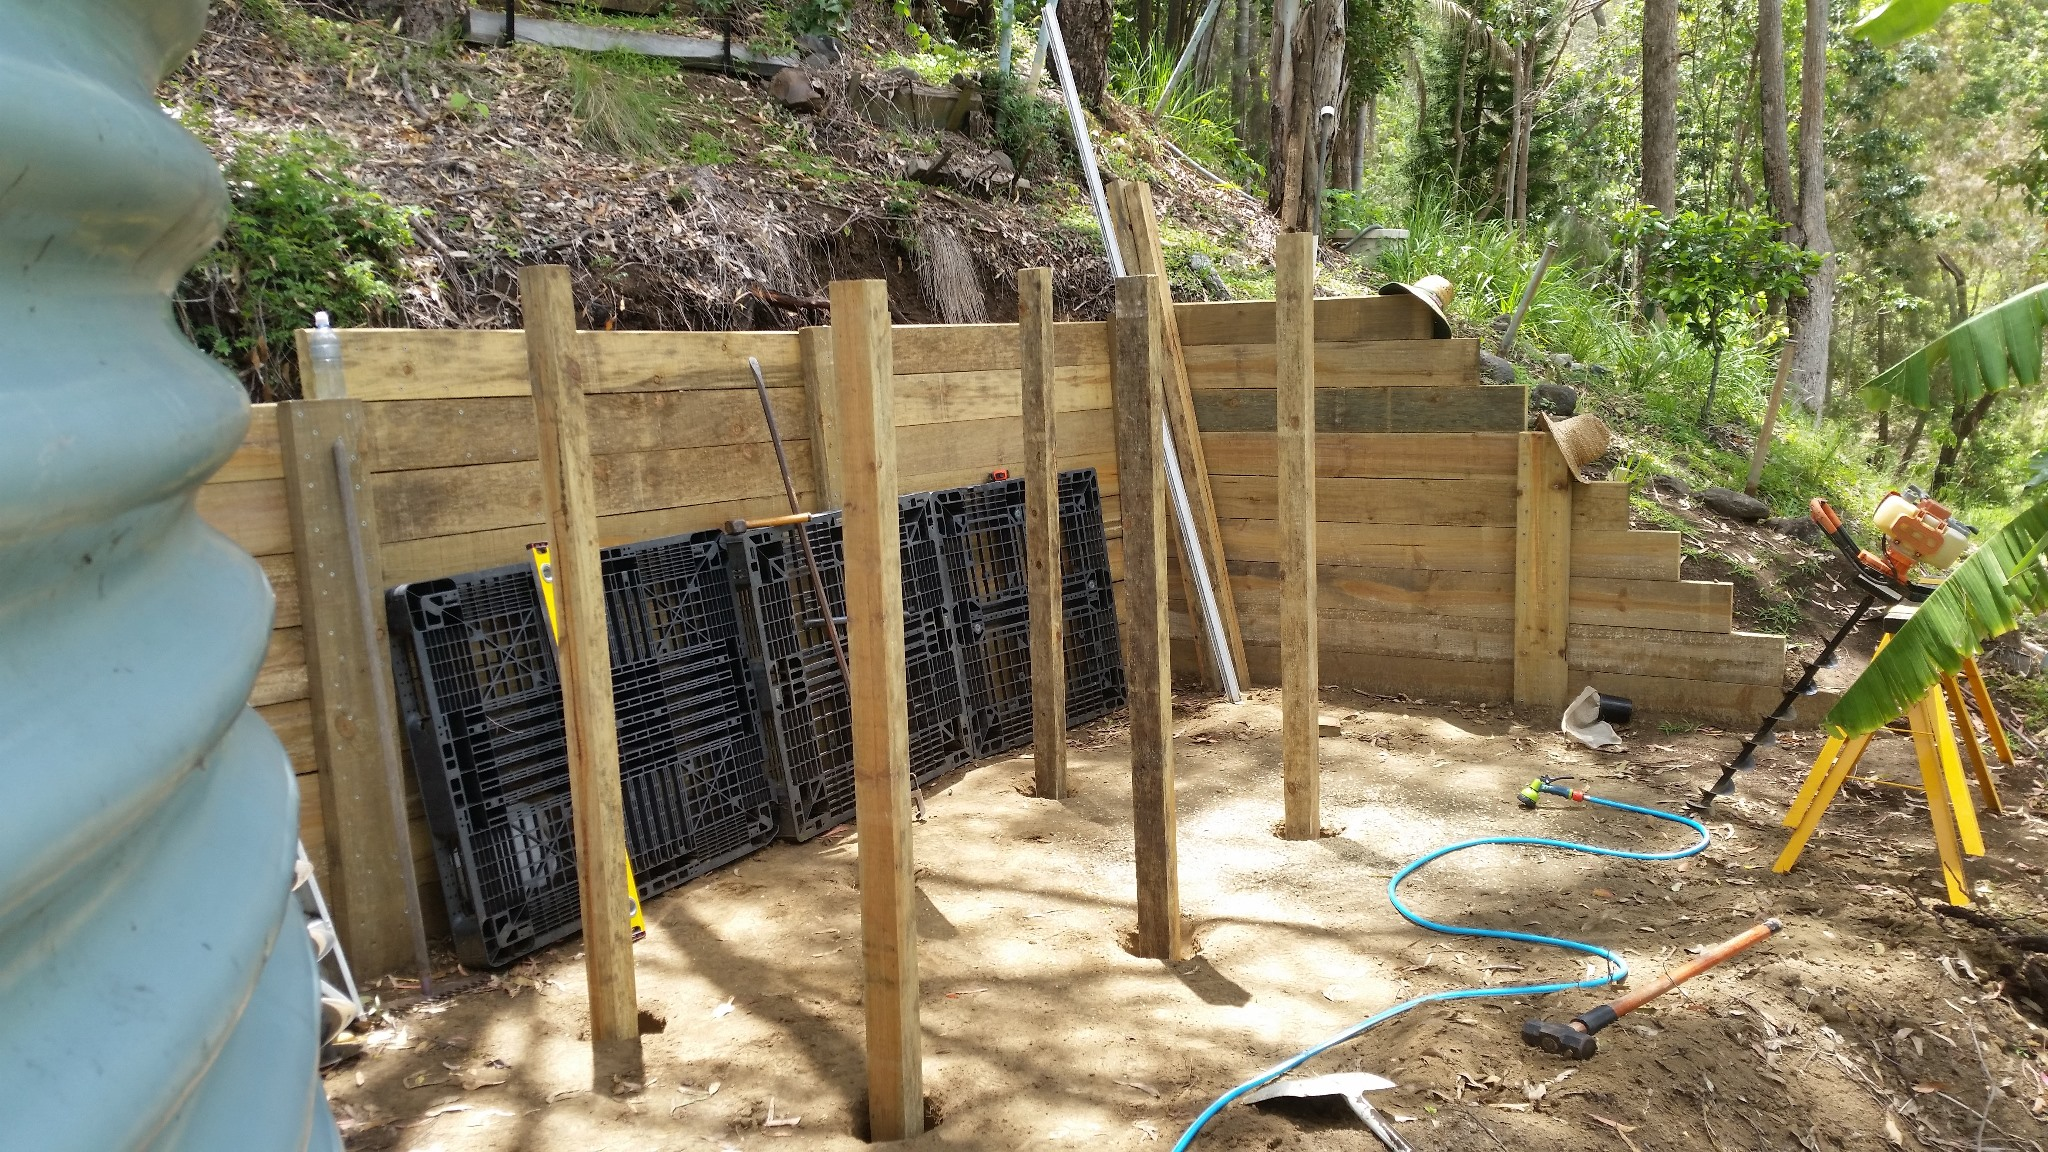 Compost Bins - Construction